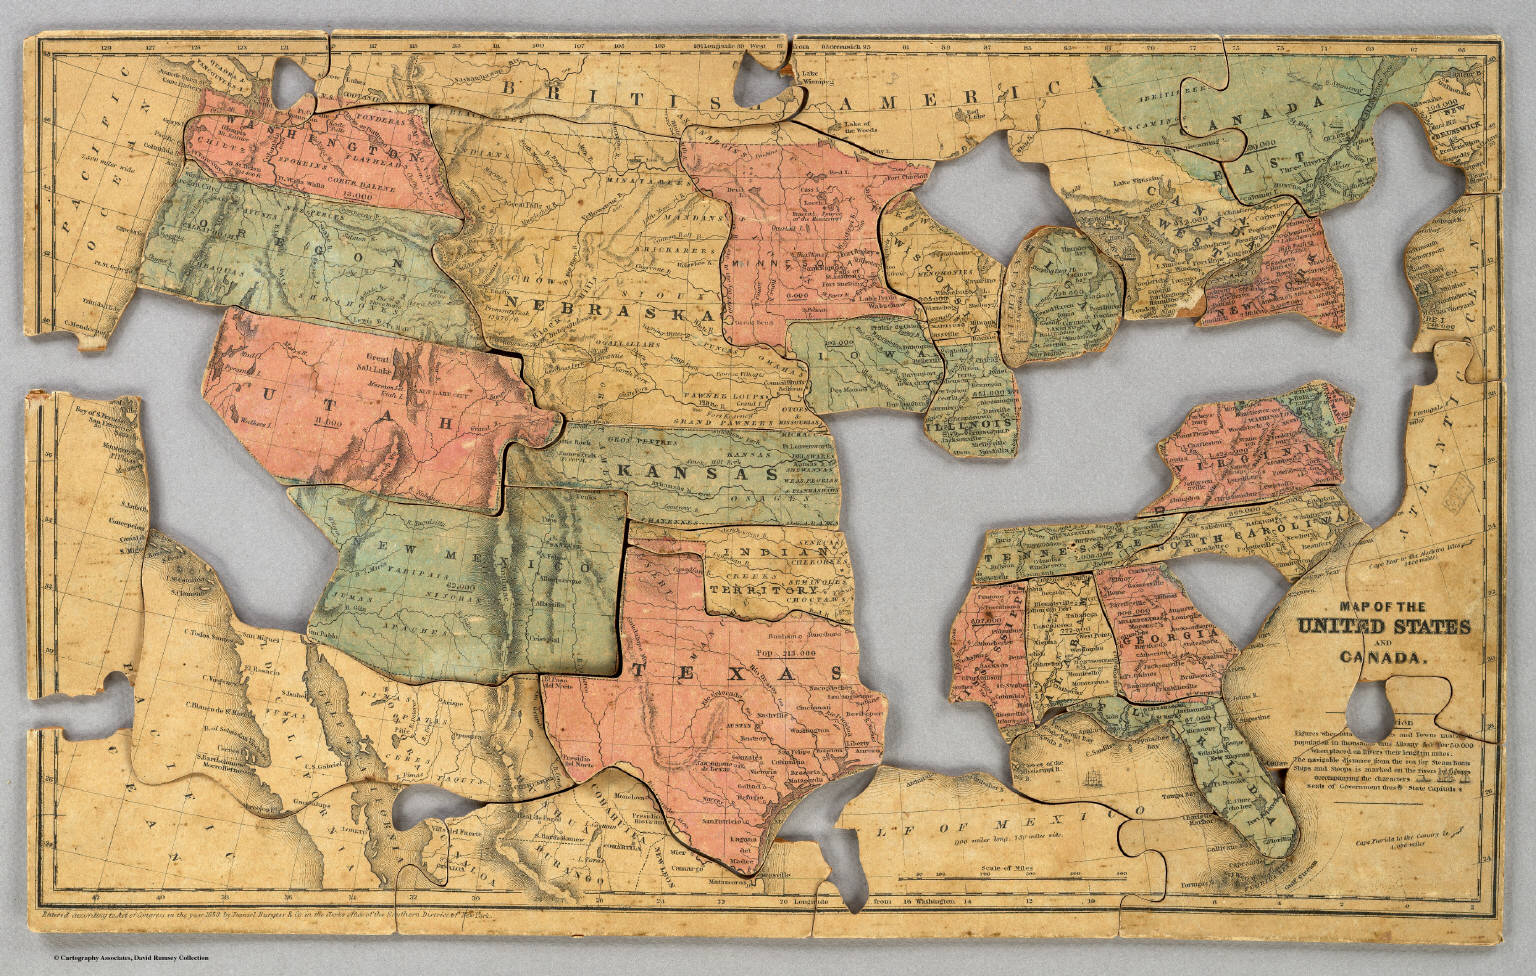 Map of the United States and Canada. - David Rumsey Historical Map ...